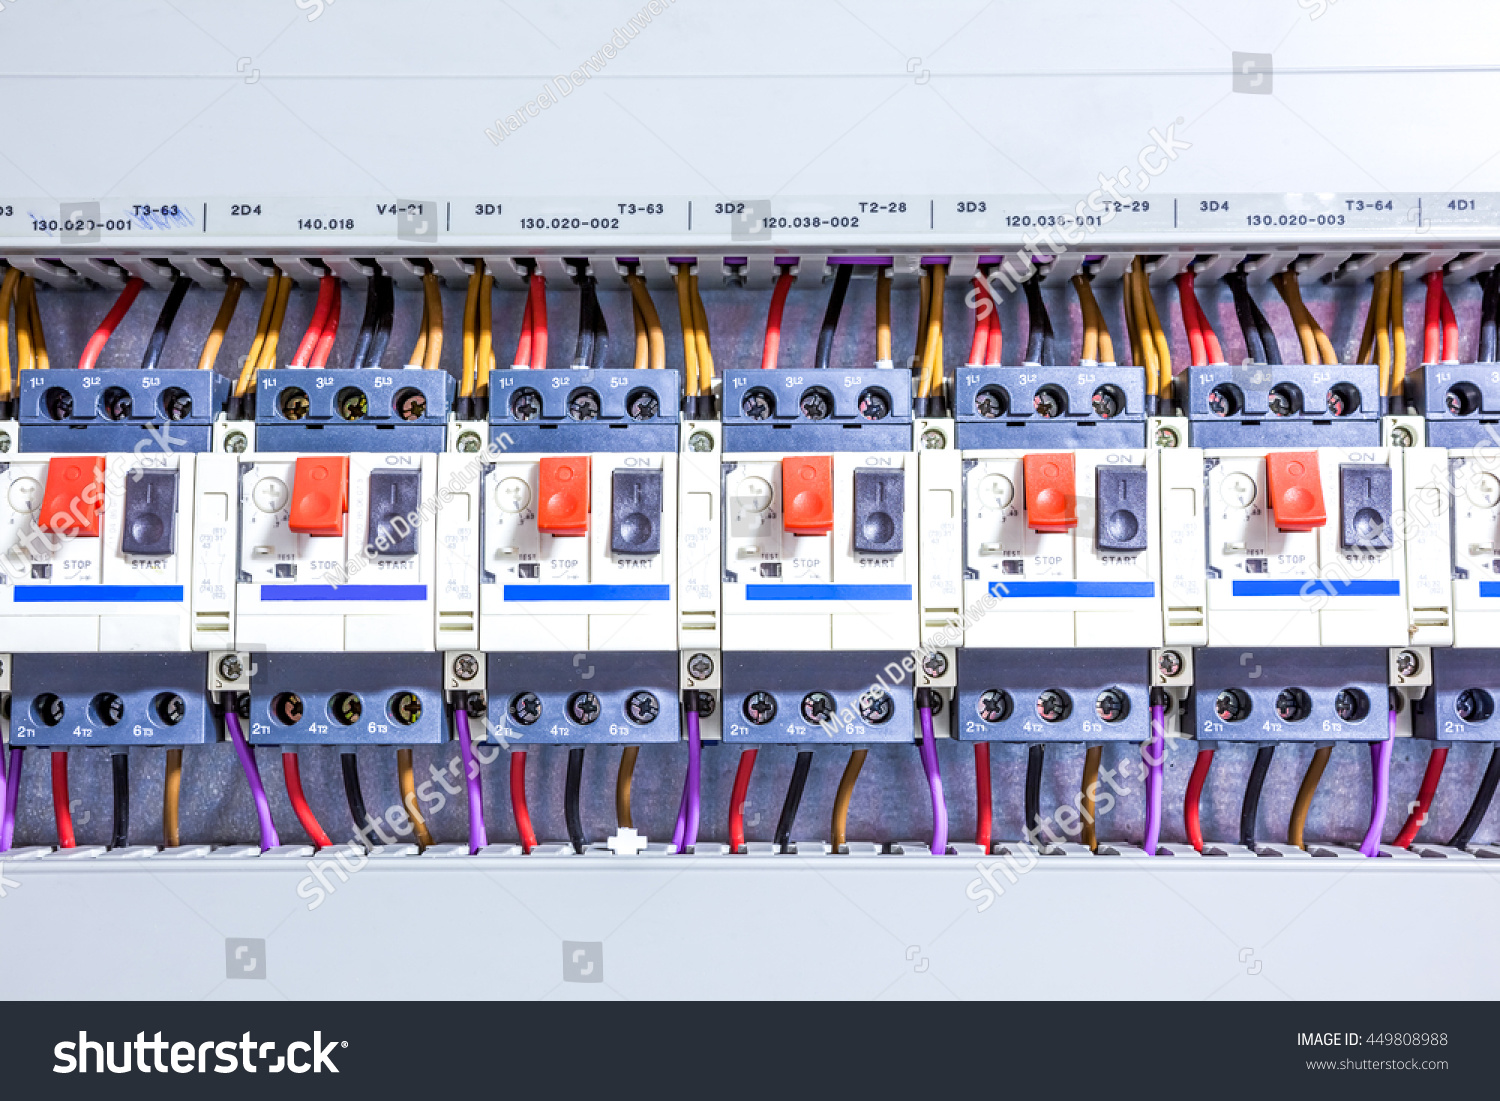 hight resolution of this electricity fuse box is an system for the whole house